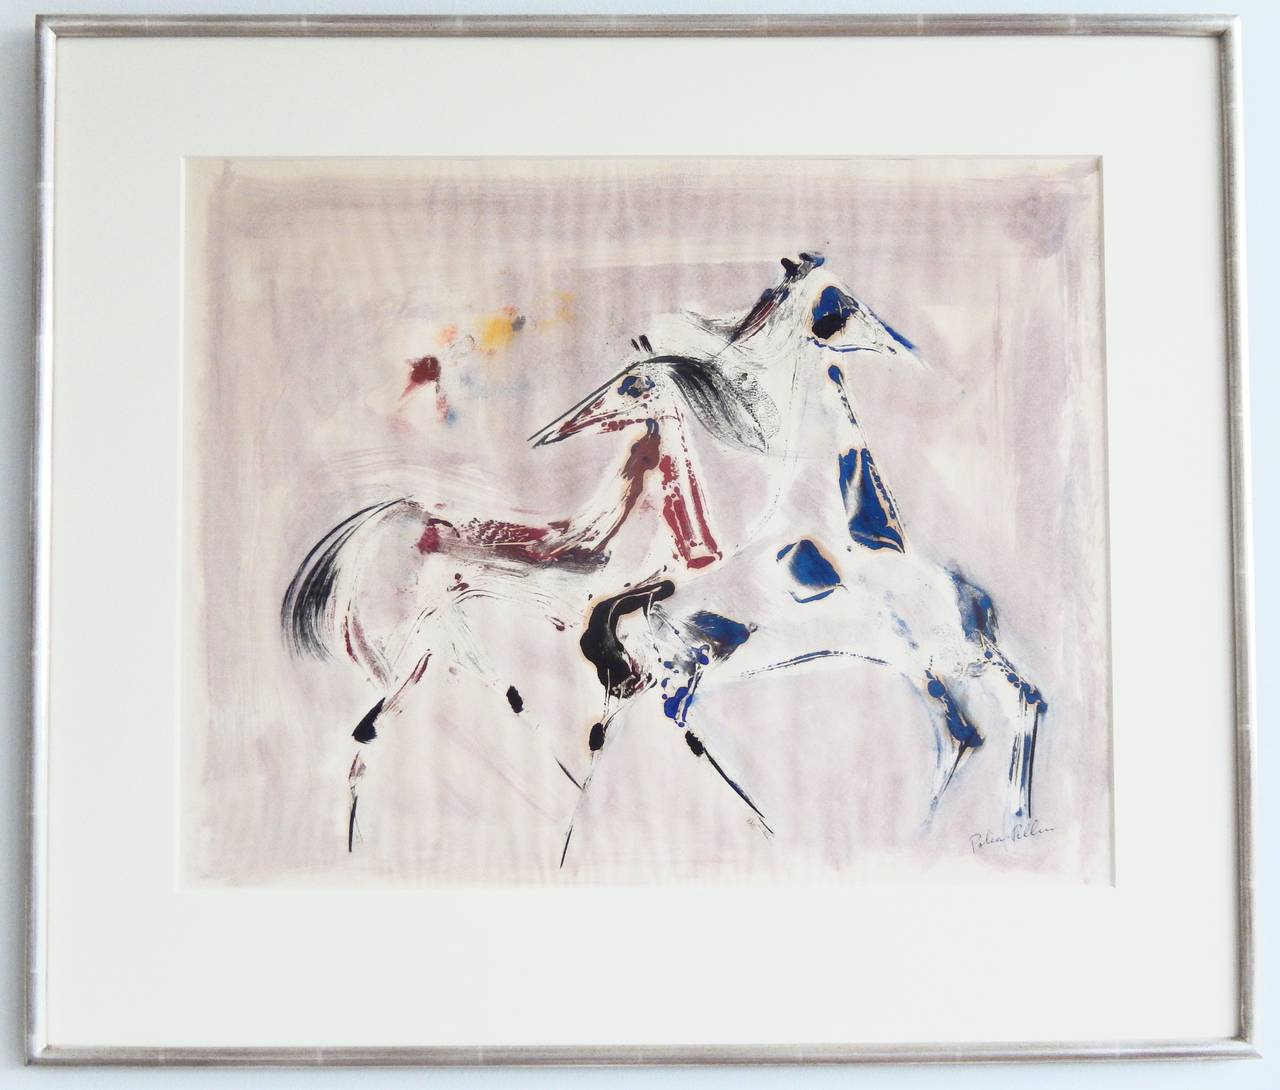 An expressive, richly-colored watercolor of prancing horses by the American painter, watercolorist, and ceramist Polia Pillin (1909-1992). Signed by the artist. Dancing horses are a popular theme in her work. Born in Poland, in 1924 Pillin